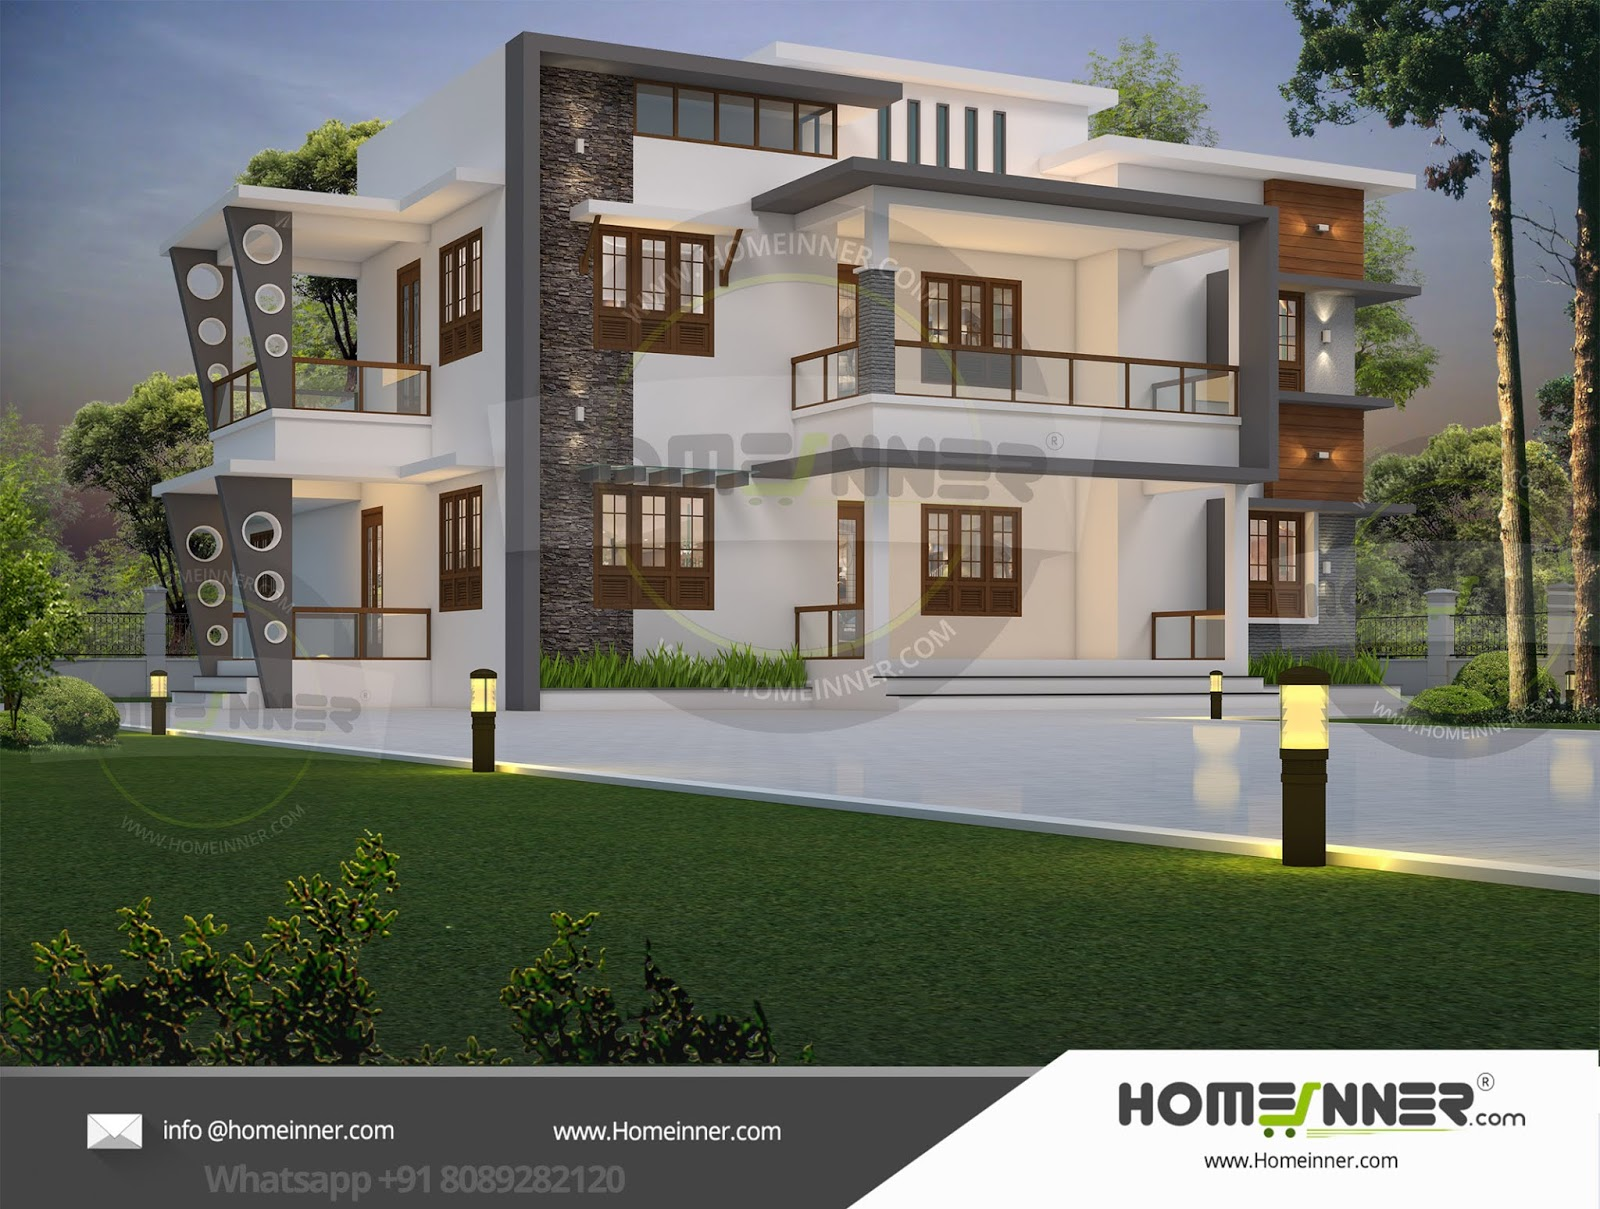 51 Lakh 5 BHK 3658 sq ft Thiruvananthapuram Villa